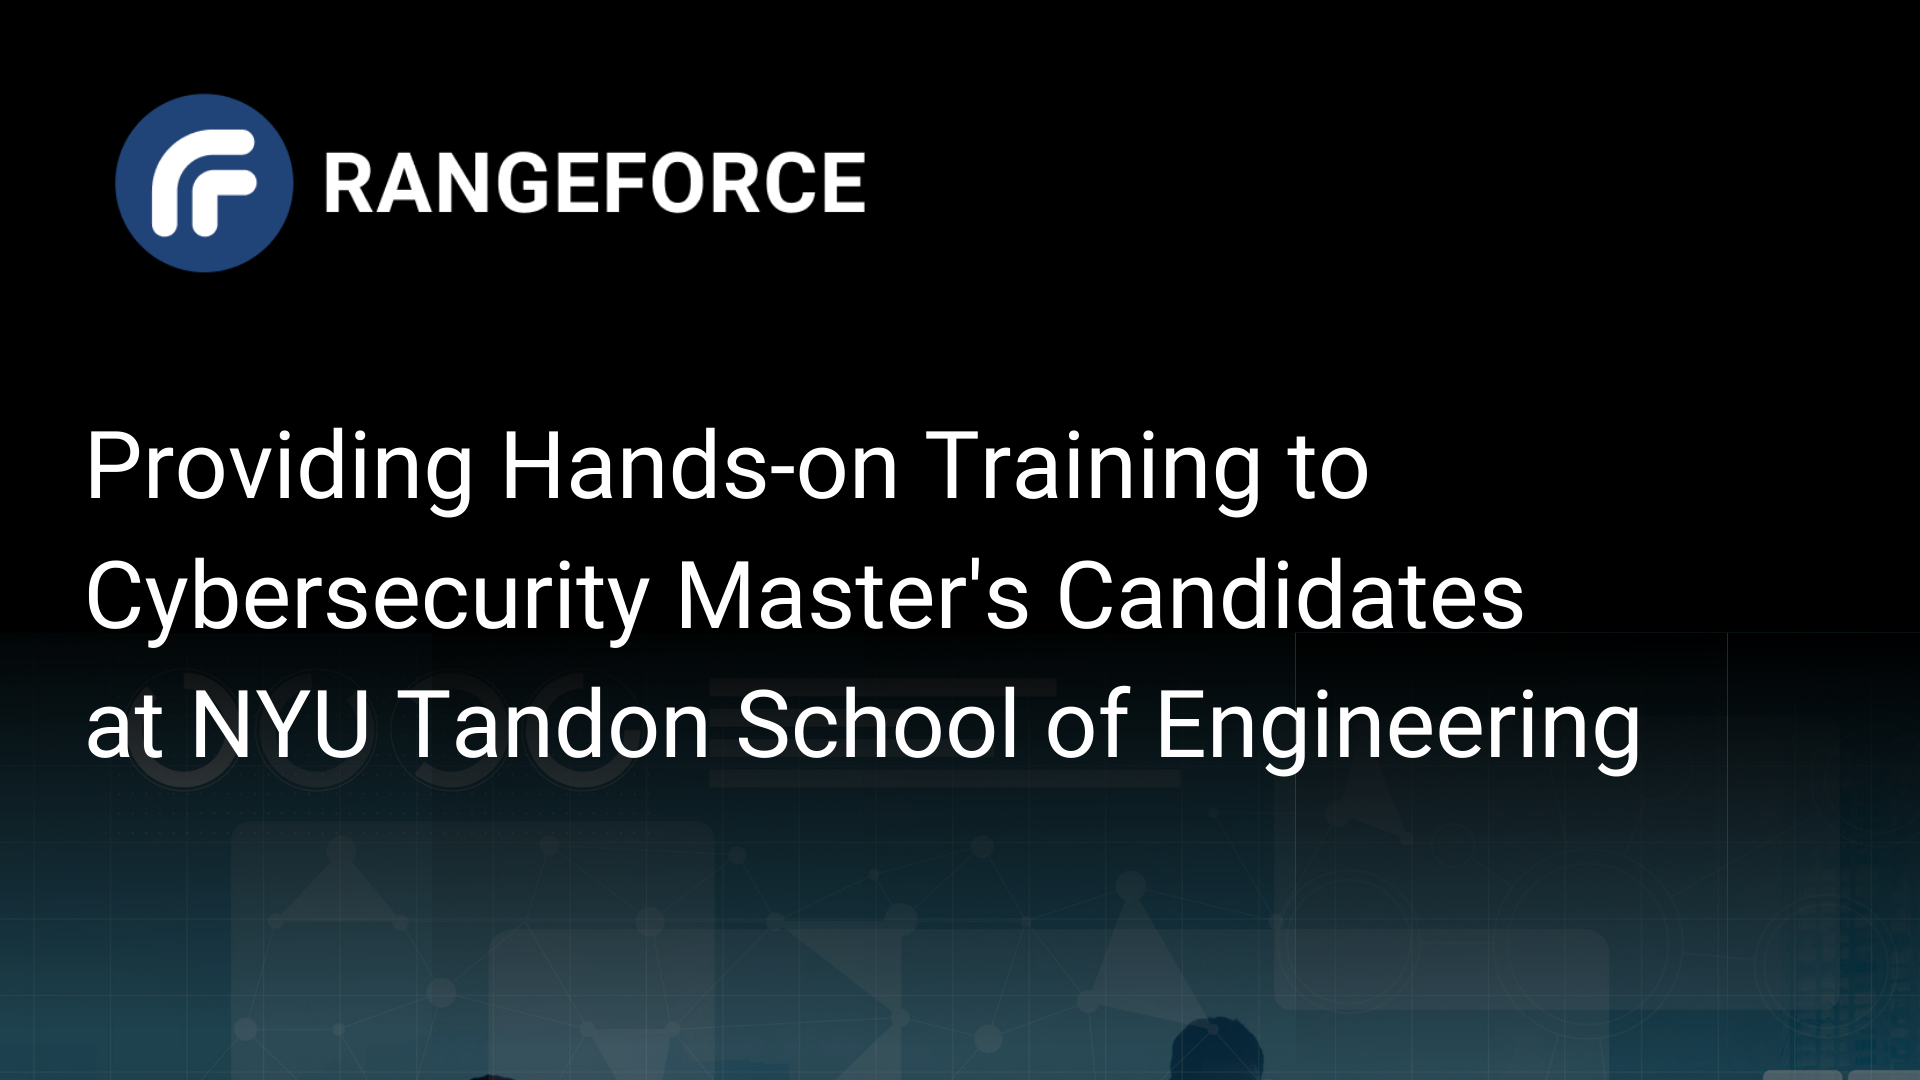 RangeForce Partners with New York University to Provide Hands-on Training Environment for Cybersecurity Master's Candidates